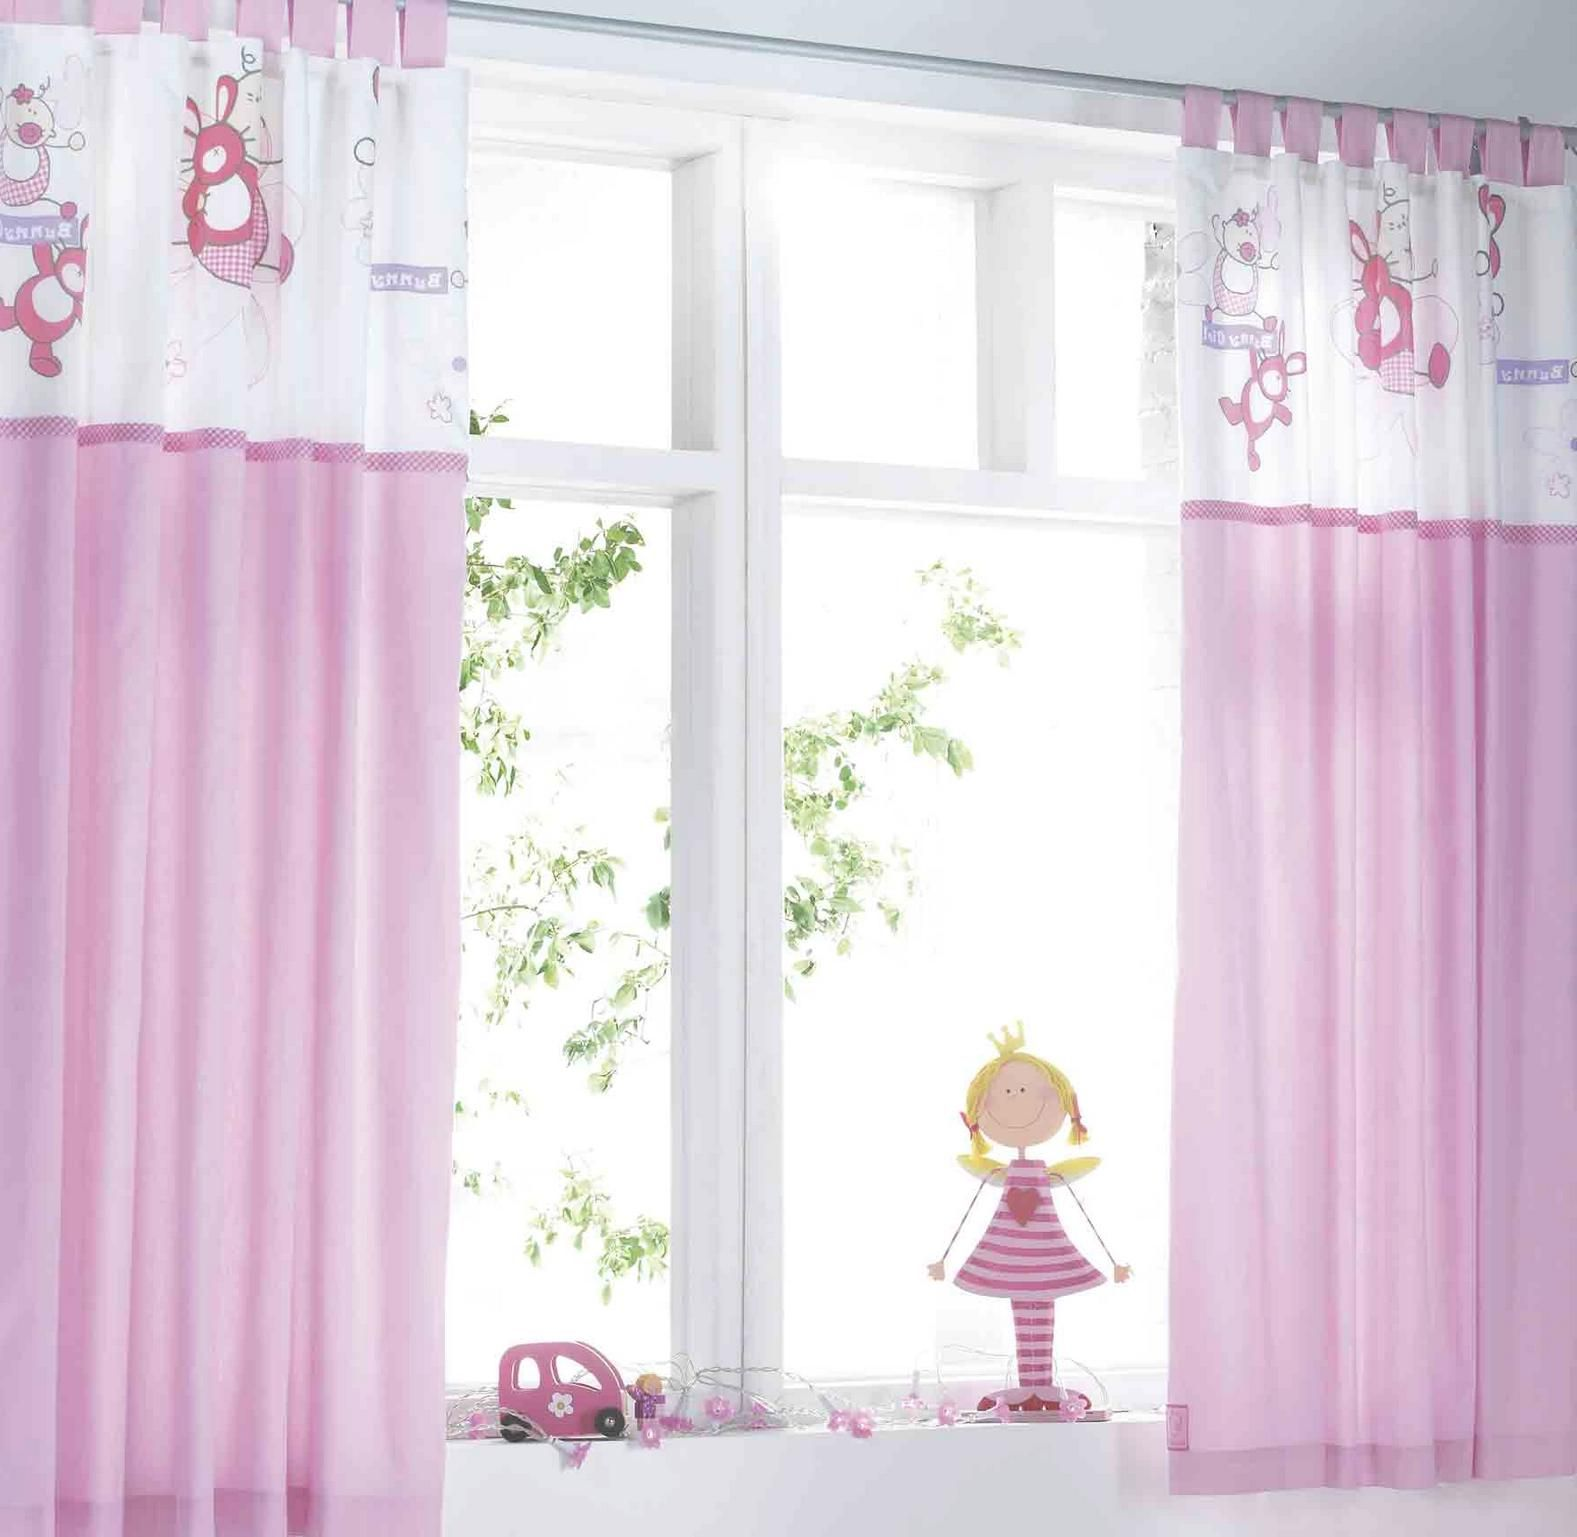 Kids modern bedroom curtains - Kids Room Bee Motive Kids Room Curtains For Girl With White And Much Purple Underneath